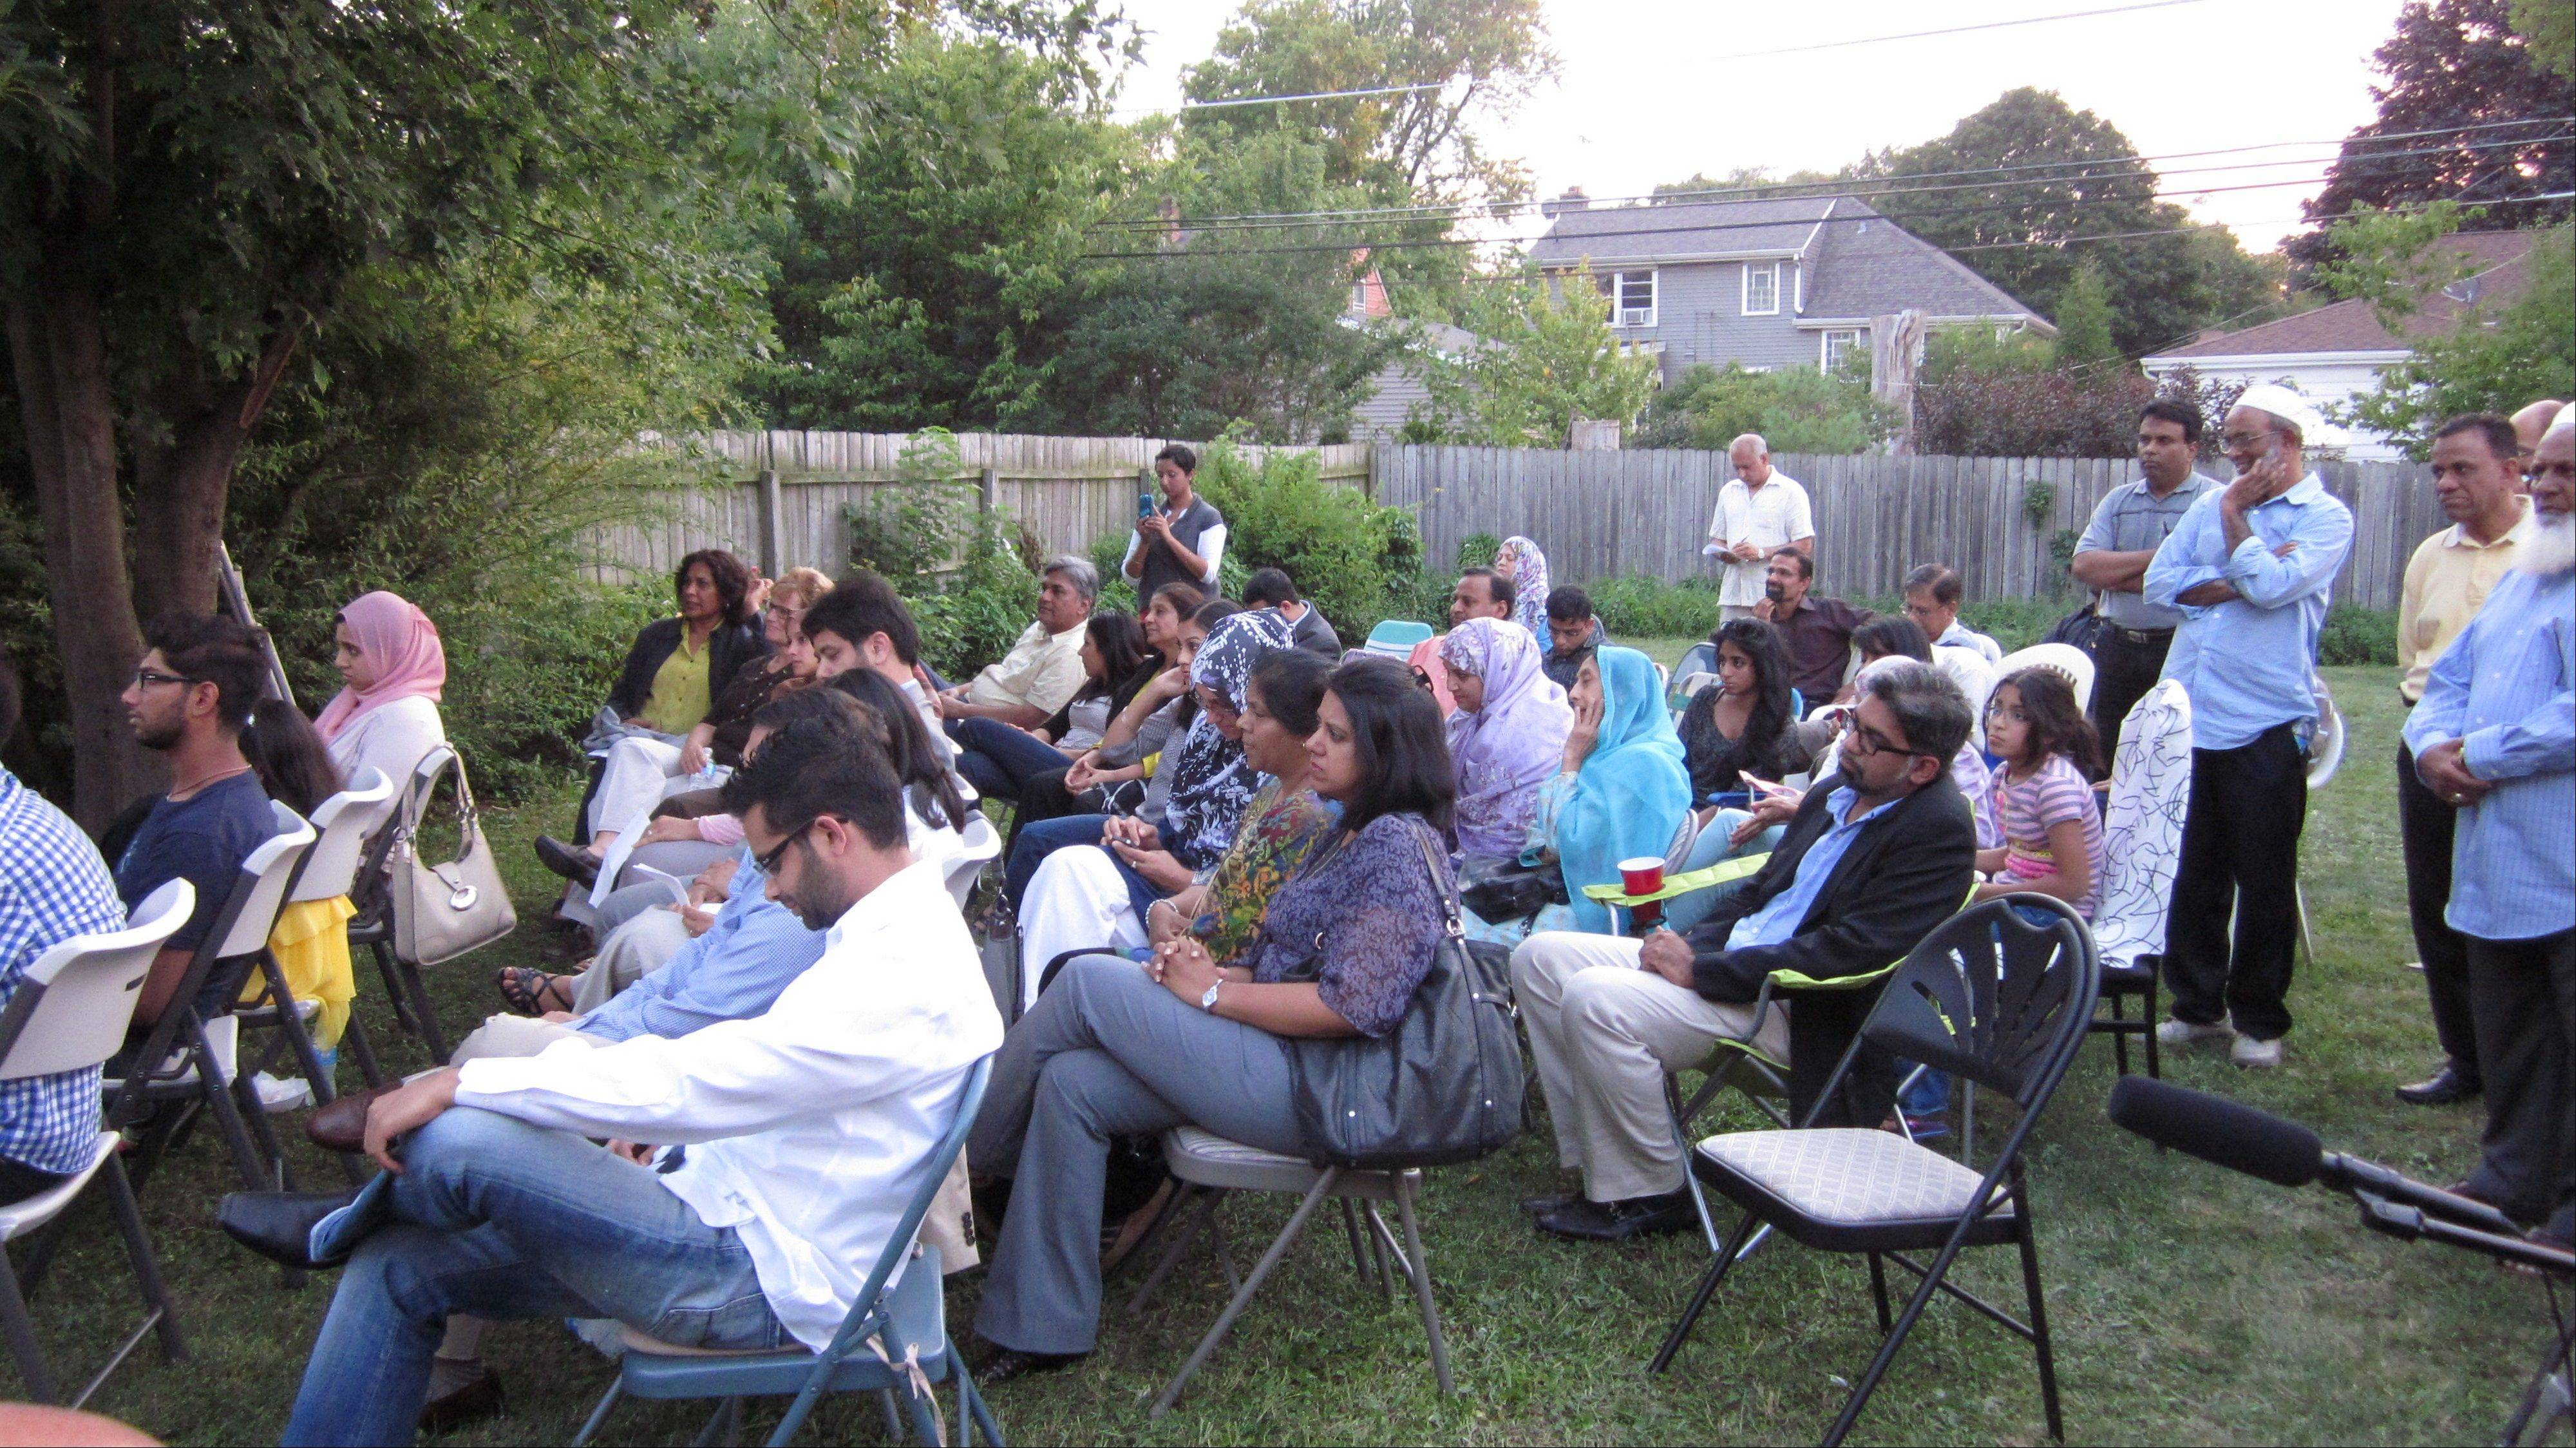 More than 50 members of the Muslim-American community attended a backyard forum with Congressman Joe Walsh on Friday night in Lombard.